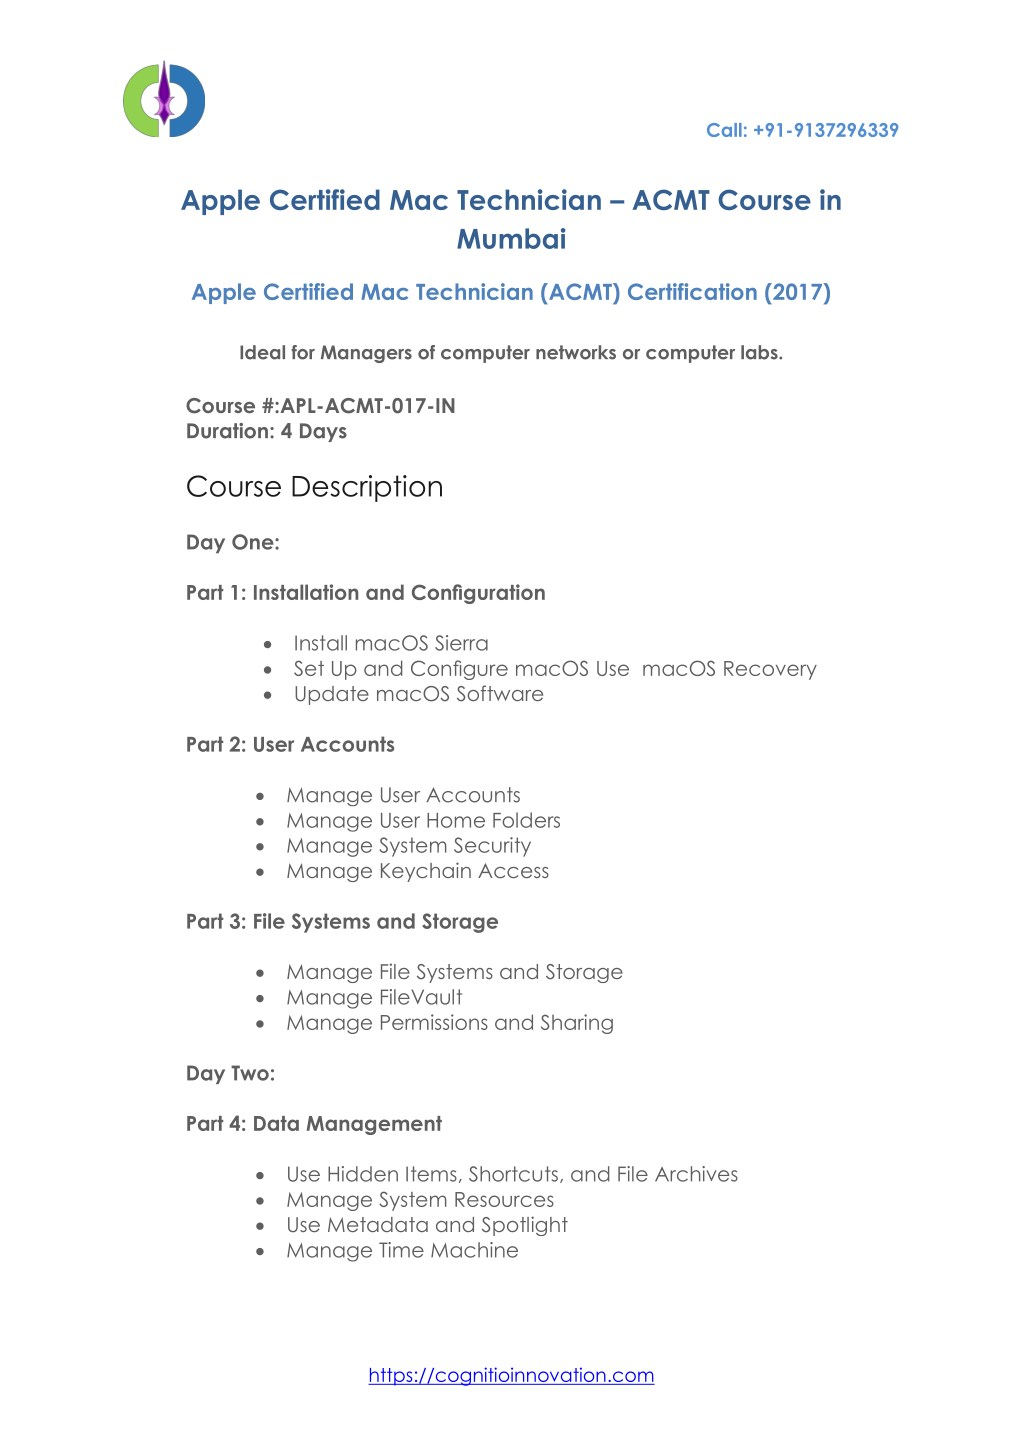 Ppt Apple Certified Mac Technician Acmt Courses In Mumbai